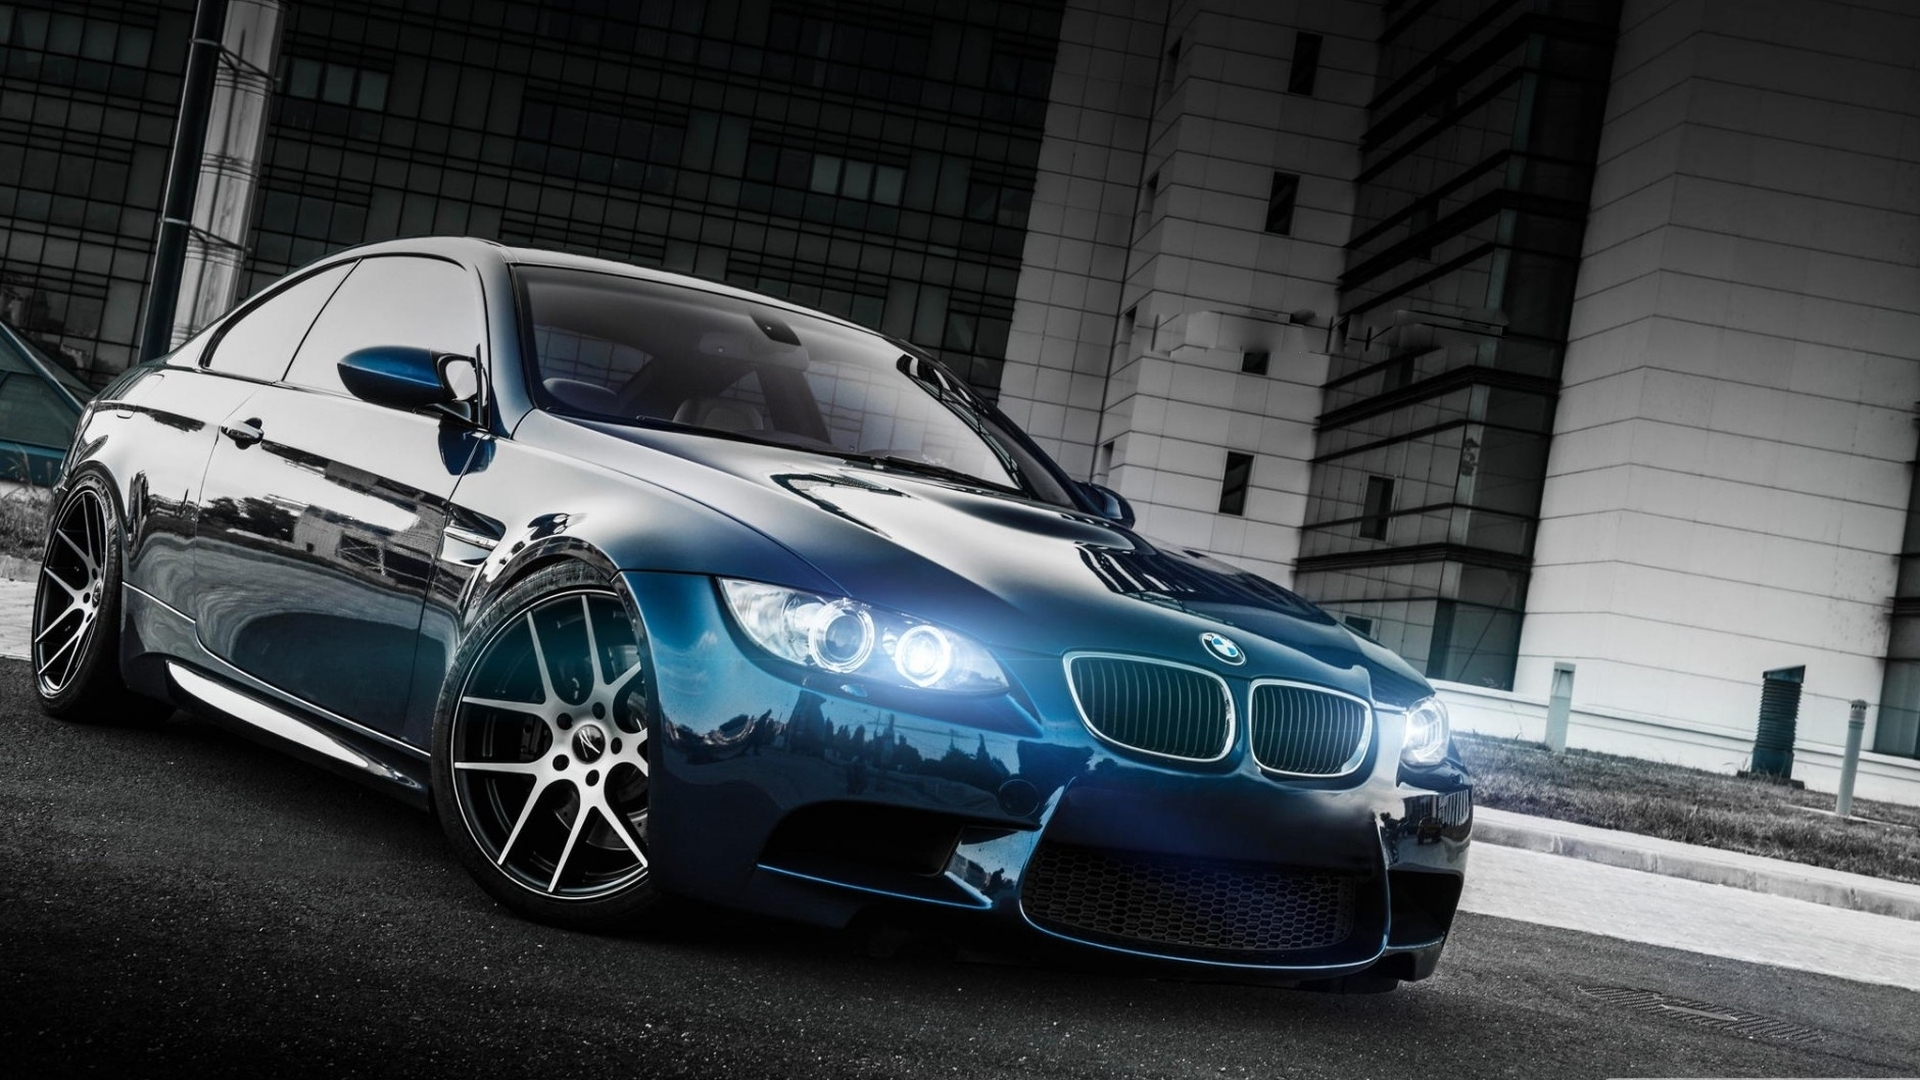 167 bmw m3 hd wallpapers | background images - wallpaper abyss